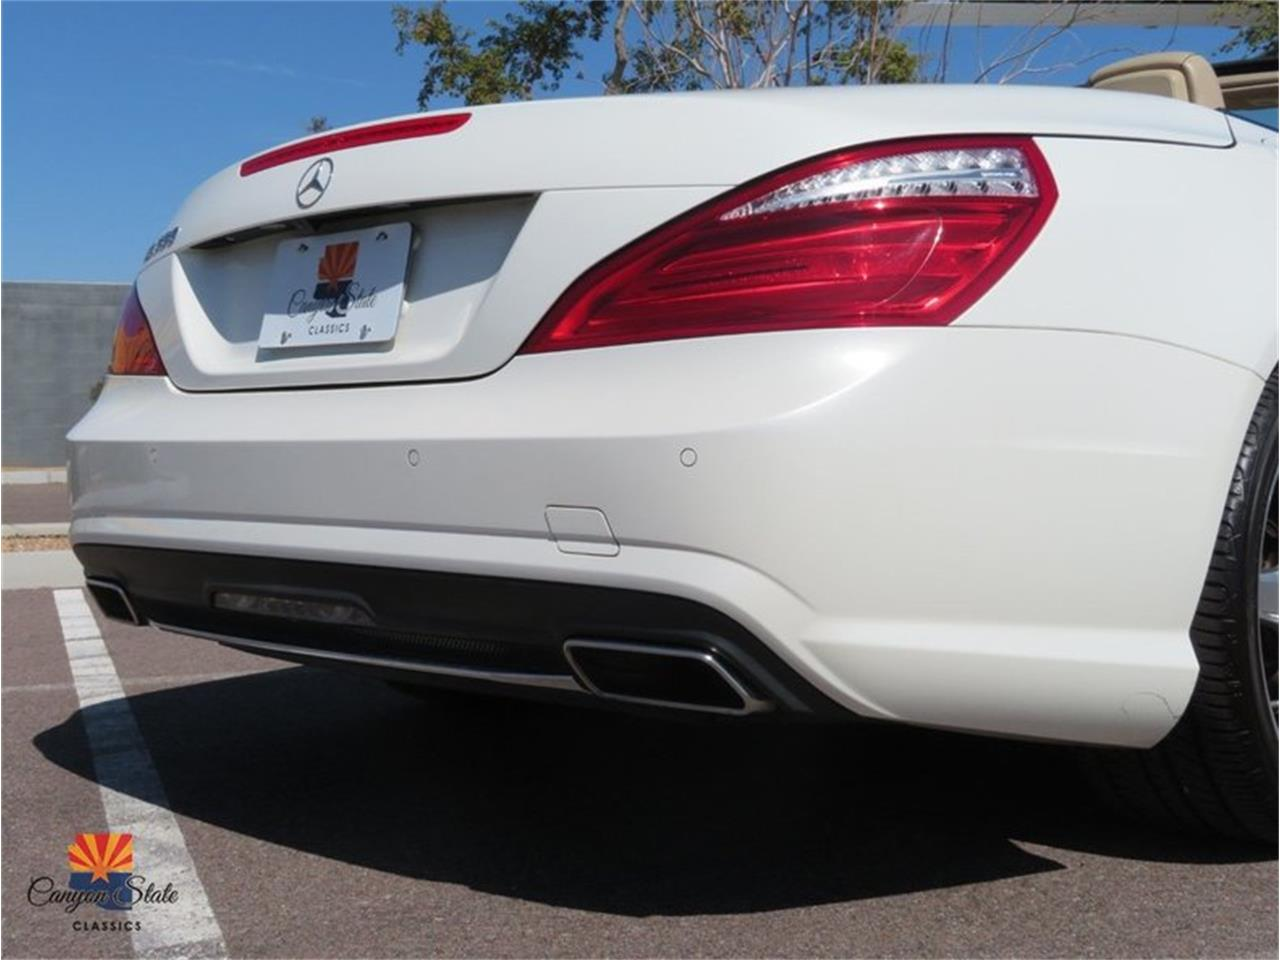 2013 Mercedes-Benz SL-Class for sale in Tempe, AZ – photo 65